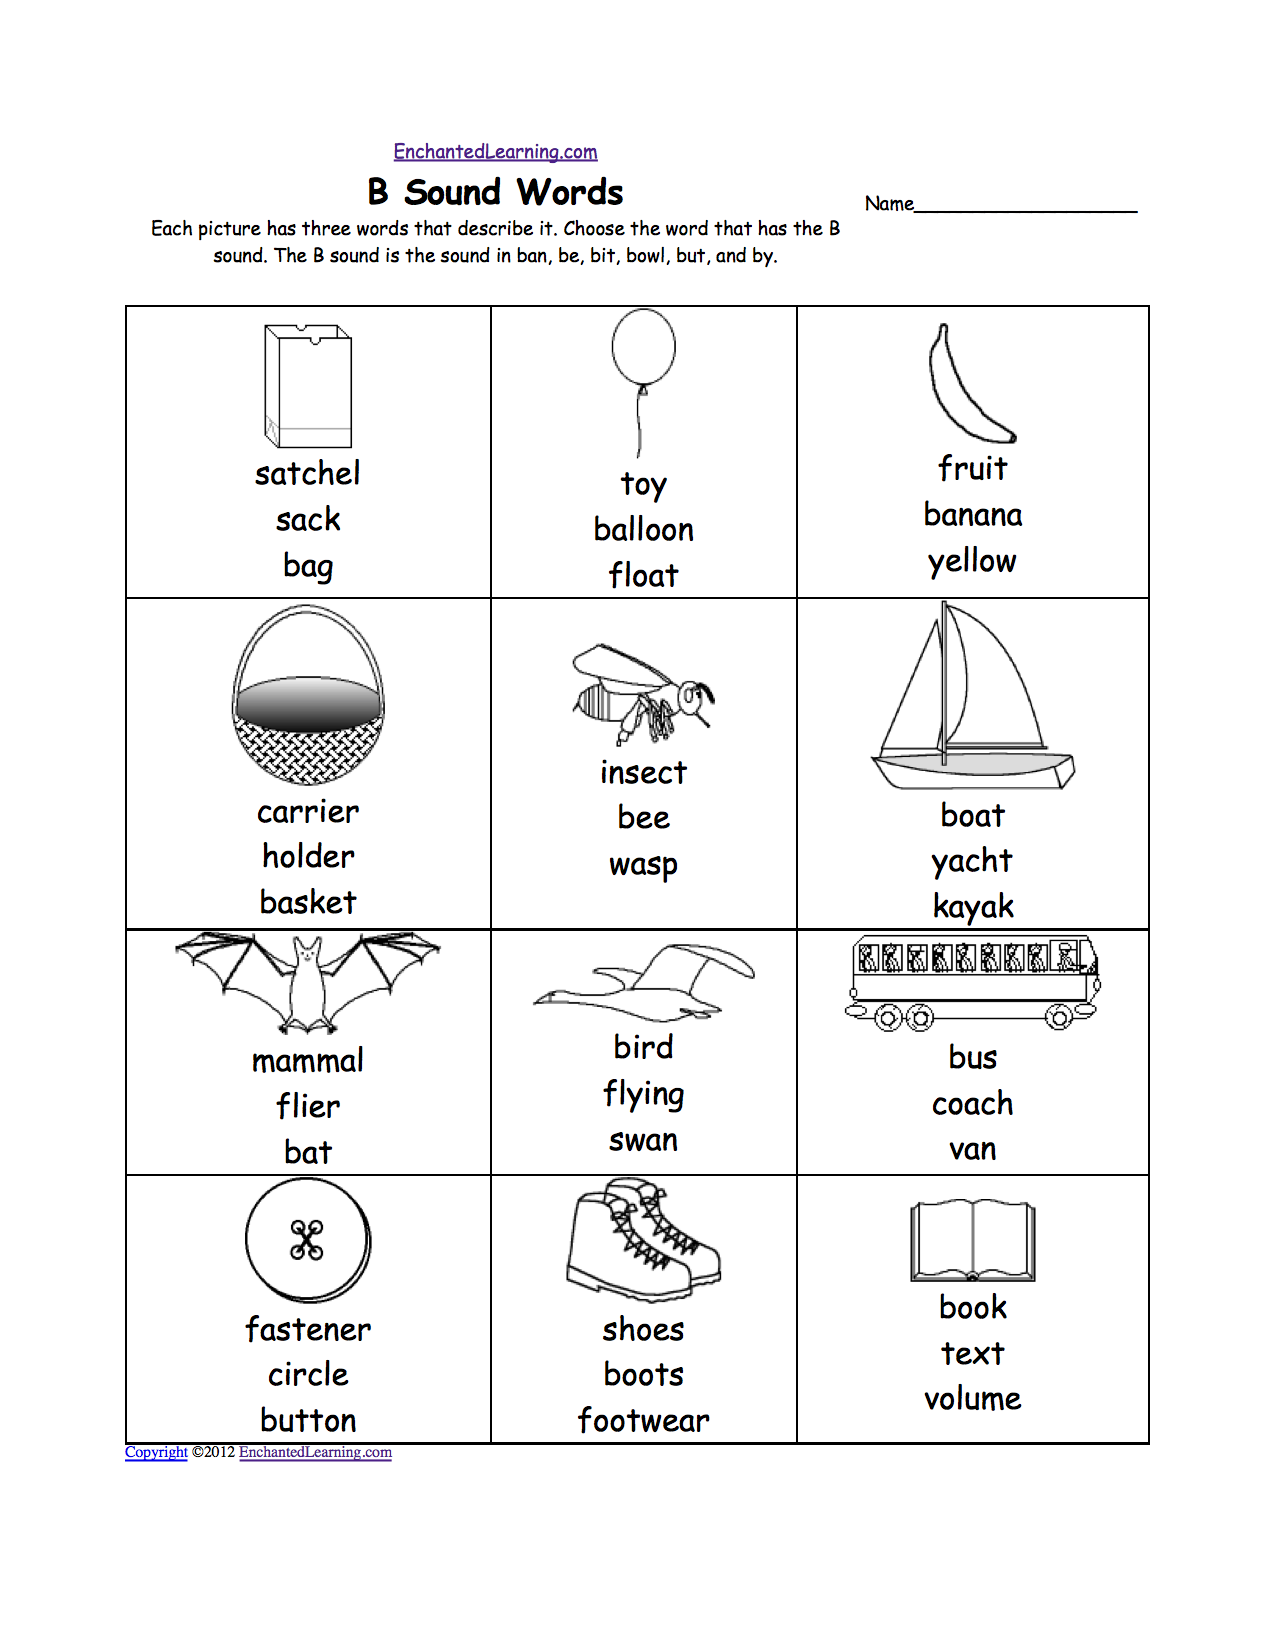 Weirdmailus  Sweet Phonics Worksheets Multiple Choice Worksheets To Print  With Magnificent Quotbquot Sound Phonics Worksheet Multiple Choice Each Picture Has Three Words That Describe It Choose The Word That Has A Quotbquot Sound The Quotbquot Sound Is The Sound  With Awesome Systems Of Equations By Elimination Worksheet Also Formulas And Nomenclature Worksheet Answers In Addition Triangles Worksheet Pdf And Reading Comprehension For Preschoolers Worksheets As Well As Meal Plan Worksheet Additionally Terrestrial Biomes Worksheet From Enchantedlearningcom With Weirdmailus  Magnificent Phonics Worksheets Multiple Choice Worksheets To Print  With Awesome Quotbquot Sound Phonics Worksheet Multiple Choice Each Picture Has Three Words That Describe It Choose The Word That Has A Quotbquot Sound The Quotbquot Sound Is The Sound  And Sweet Systems Of Equations By Elimination Worksheet Also Formulas And Nomenclature Worksheet Answers In Addition Triangles Worksheet Pdf From Enchantedlearningcom